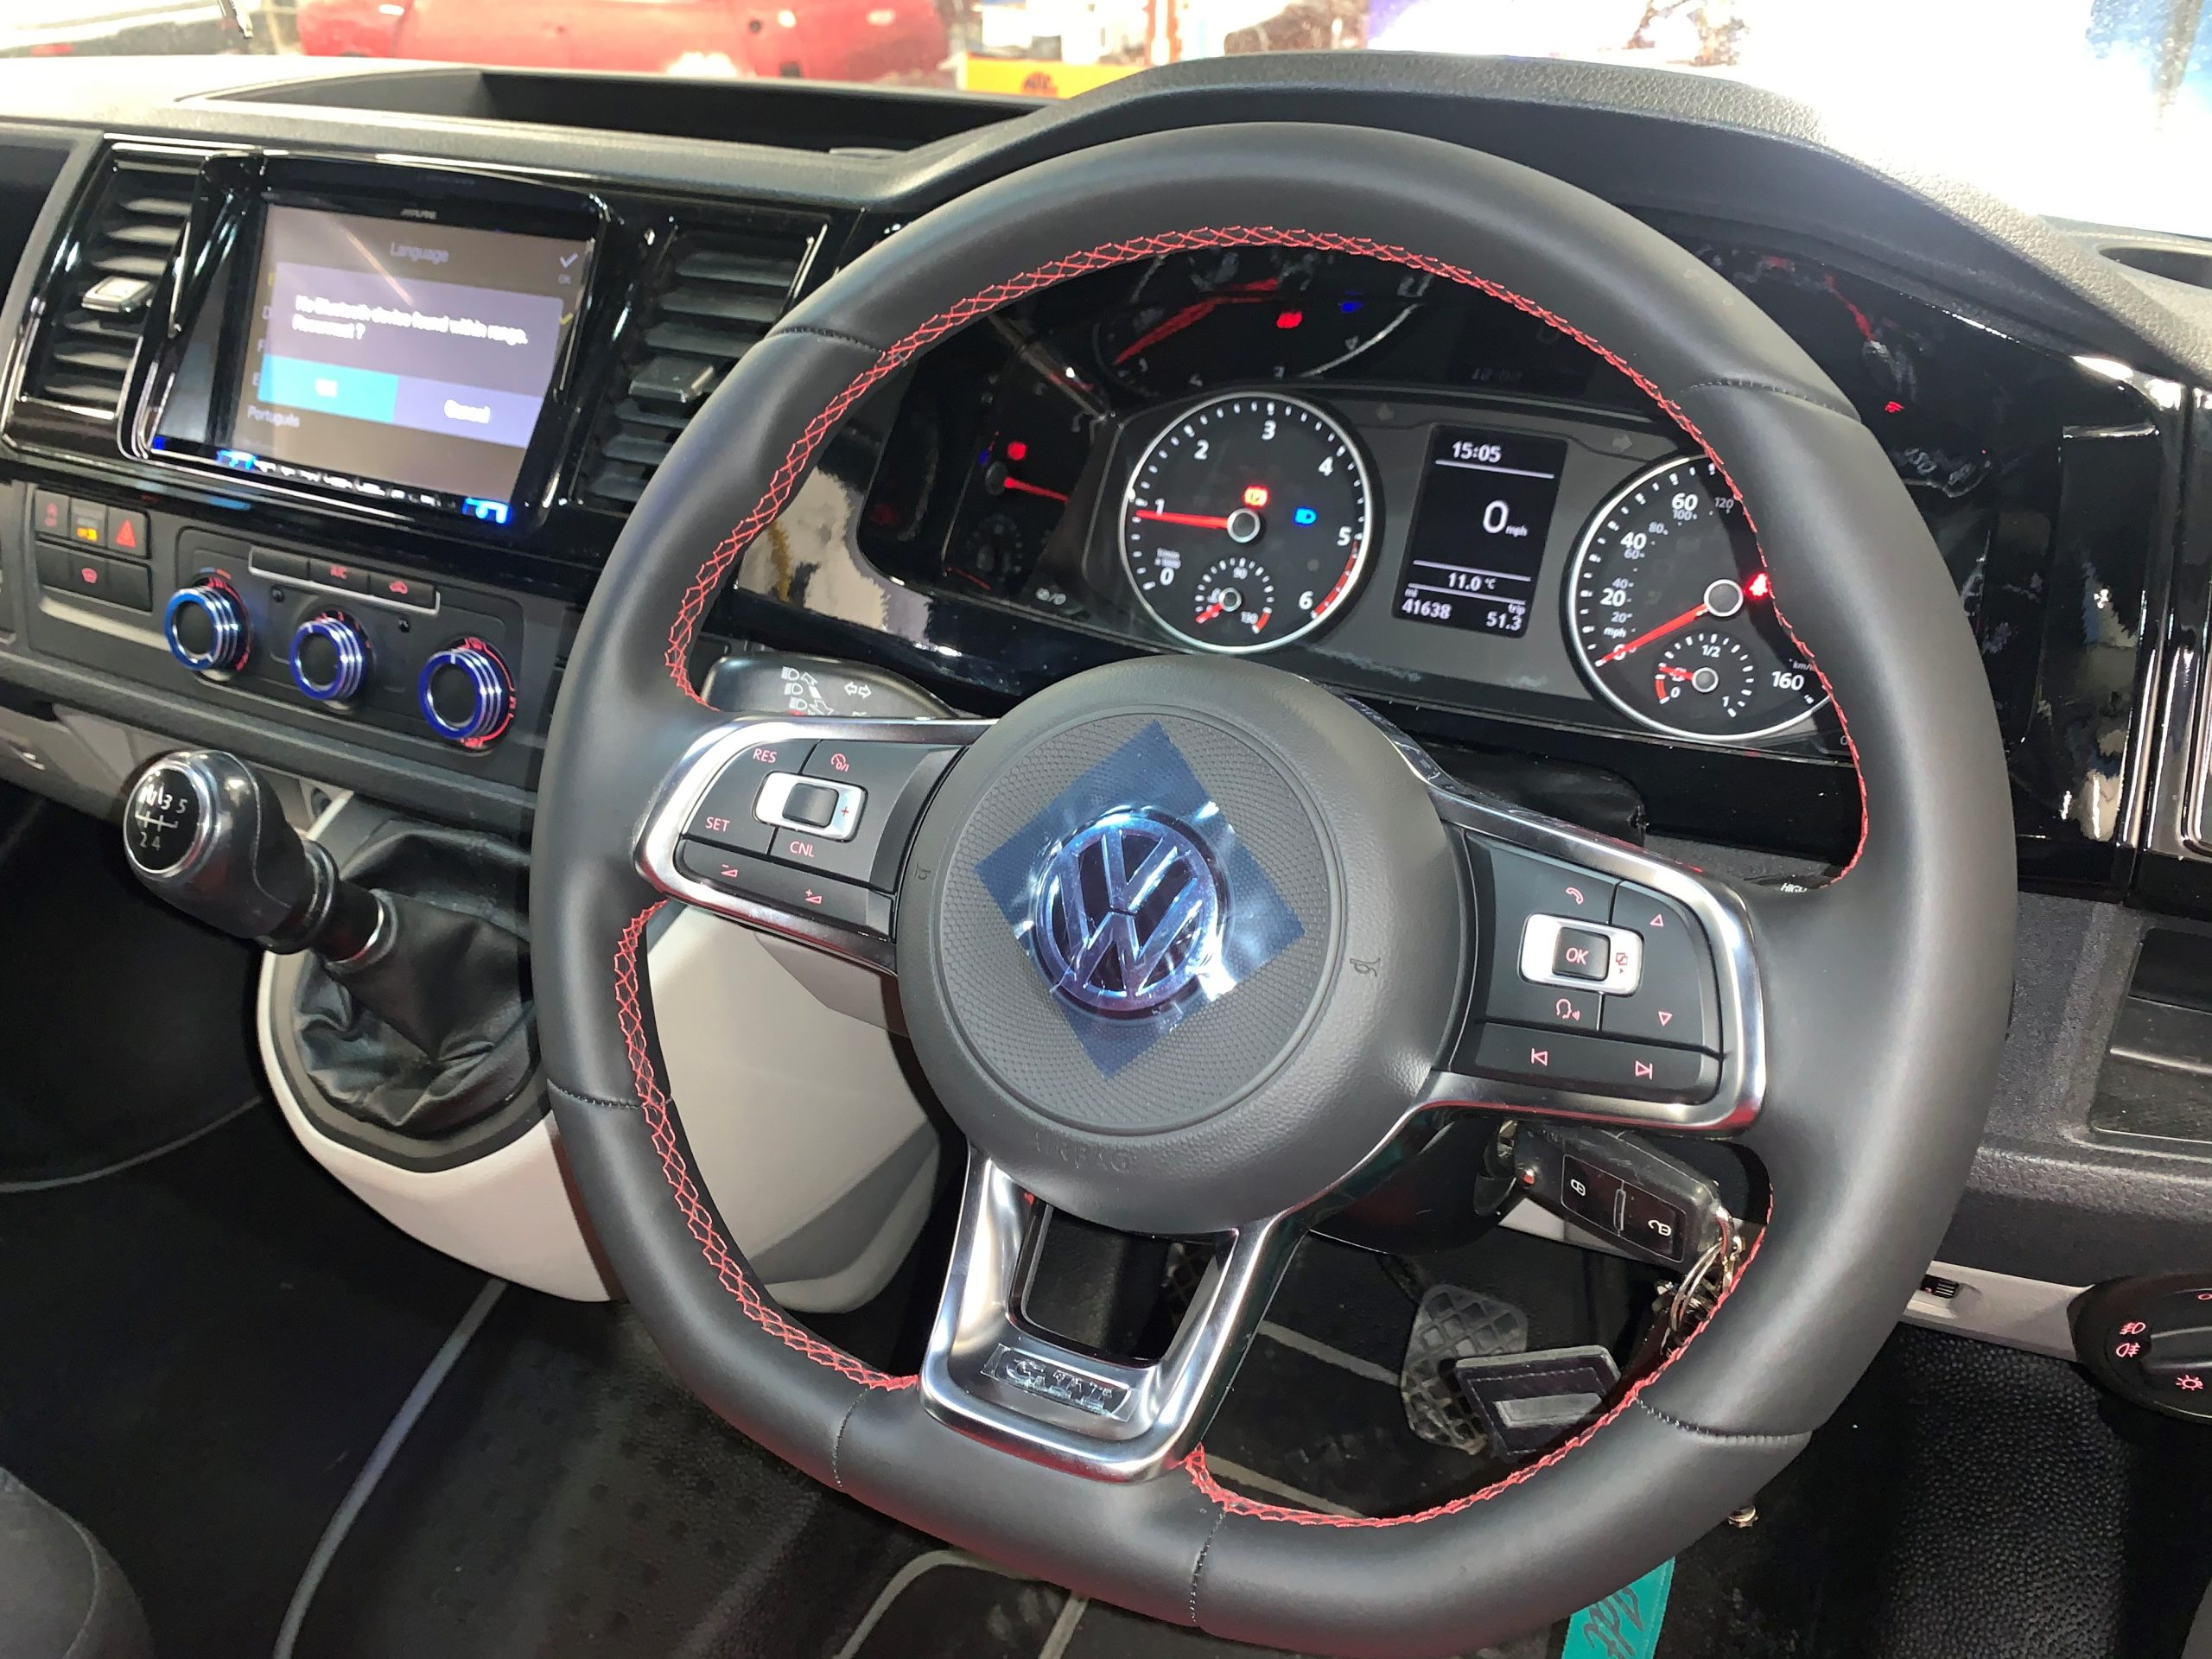 MK7 GTI MULTIFUNCTION STEERING WHEEL WITH CC